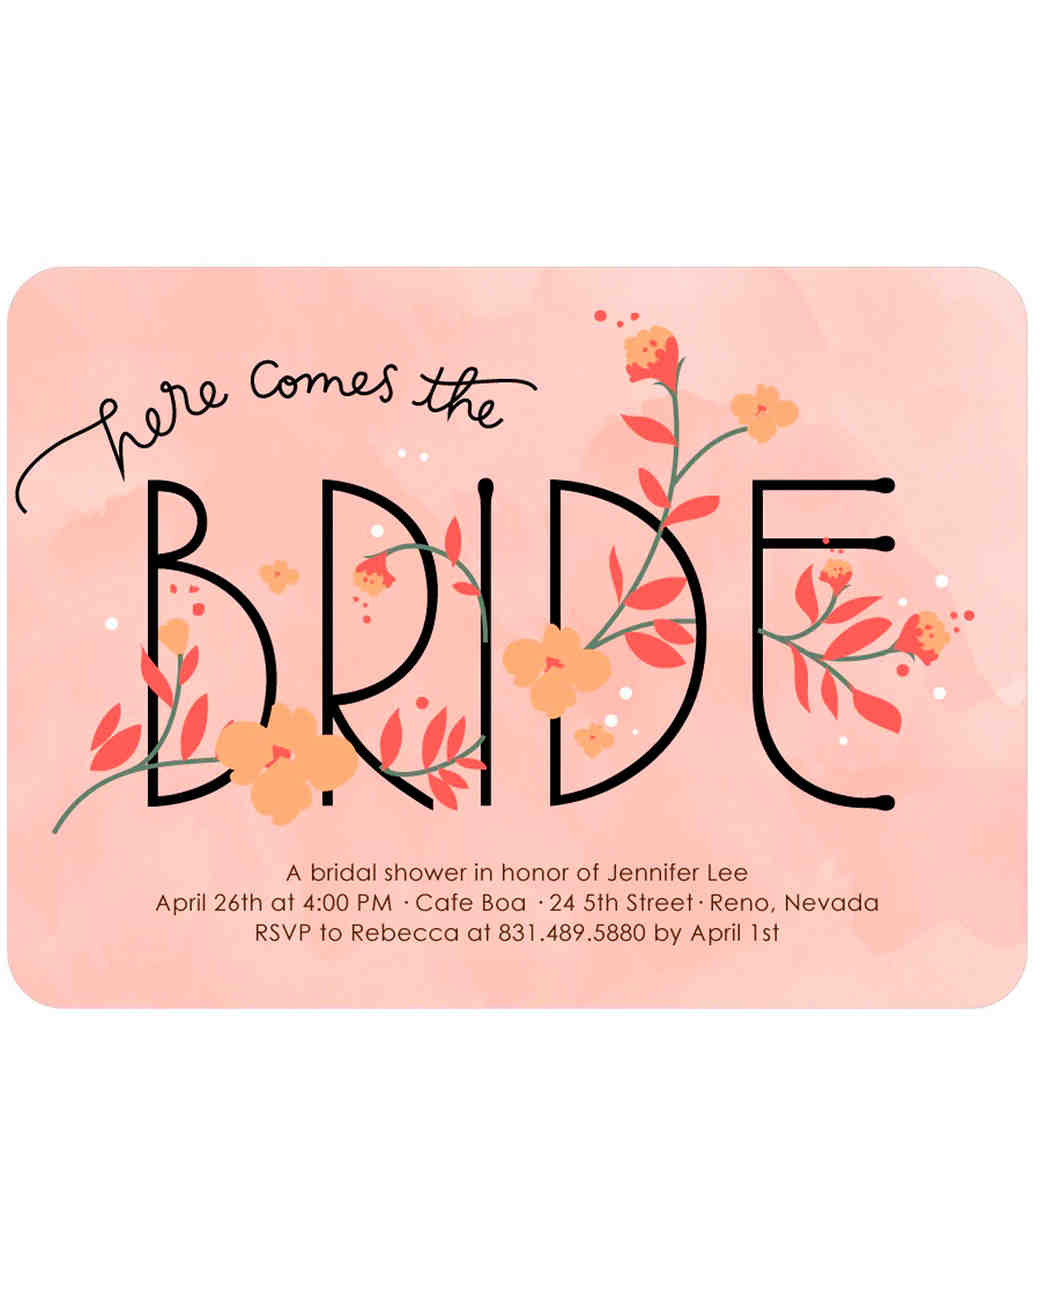 Bridal Shower Invitations We Love – Shower Invitations for Wedding